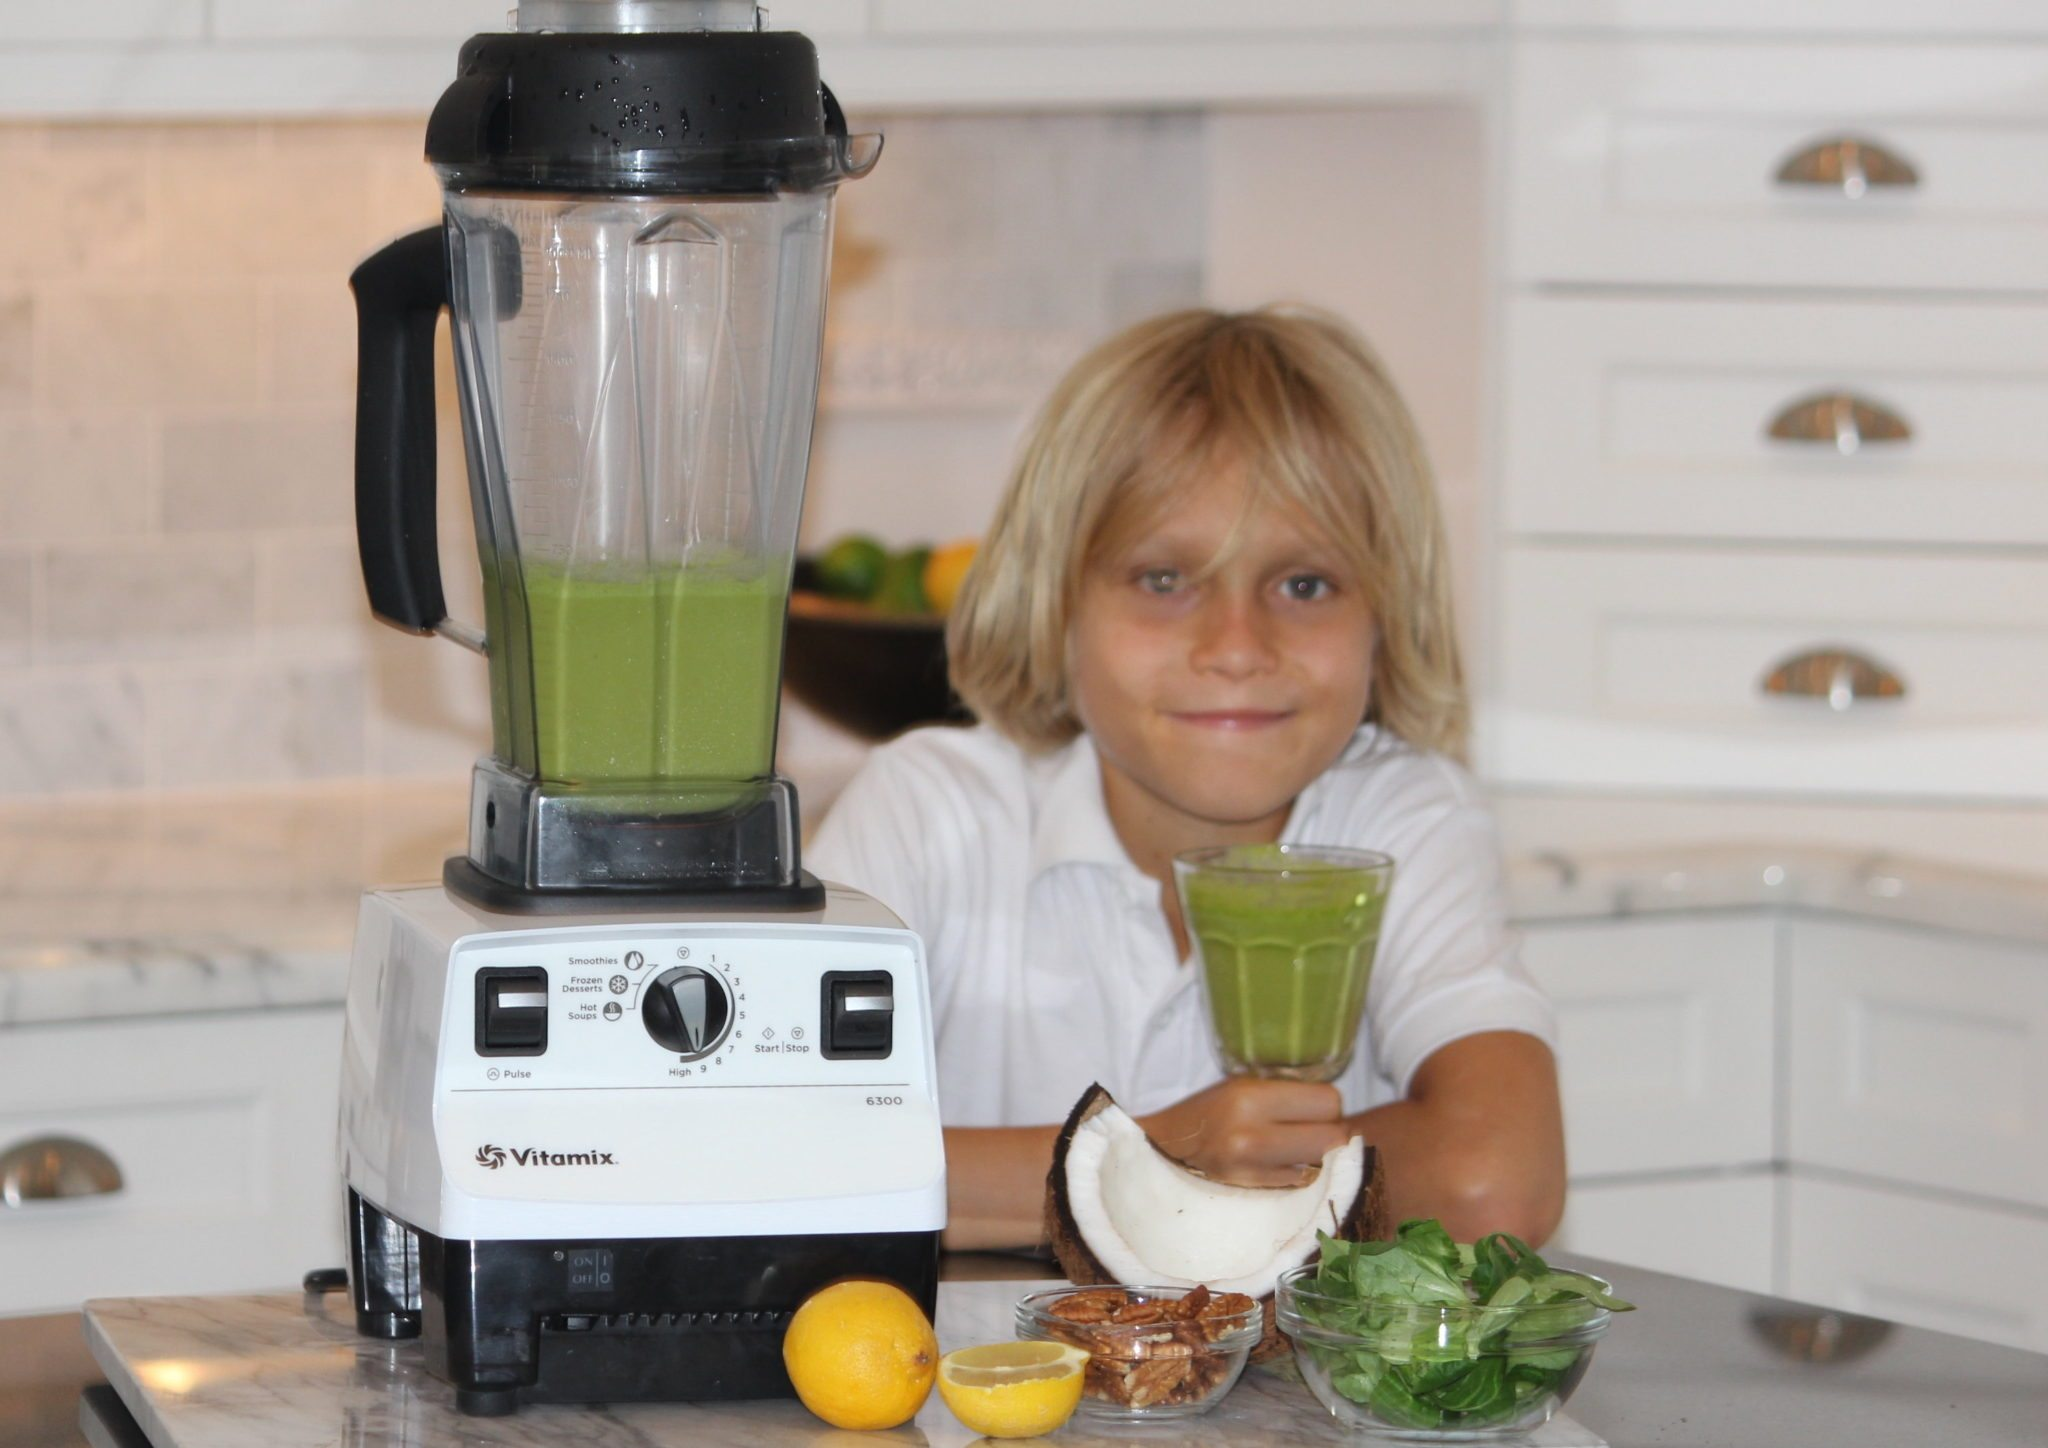 Cooking with a Vitamix